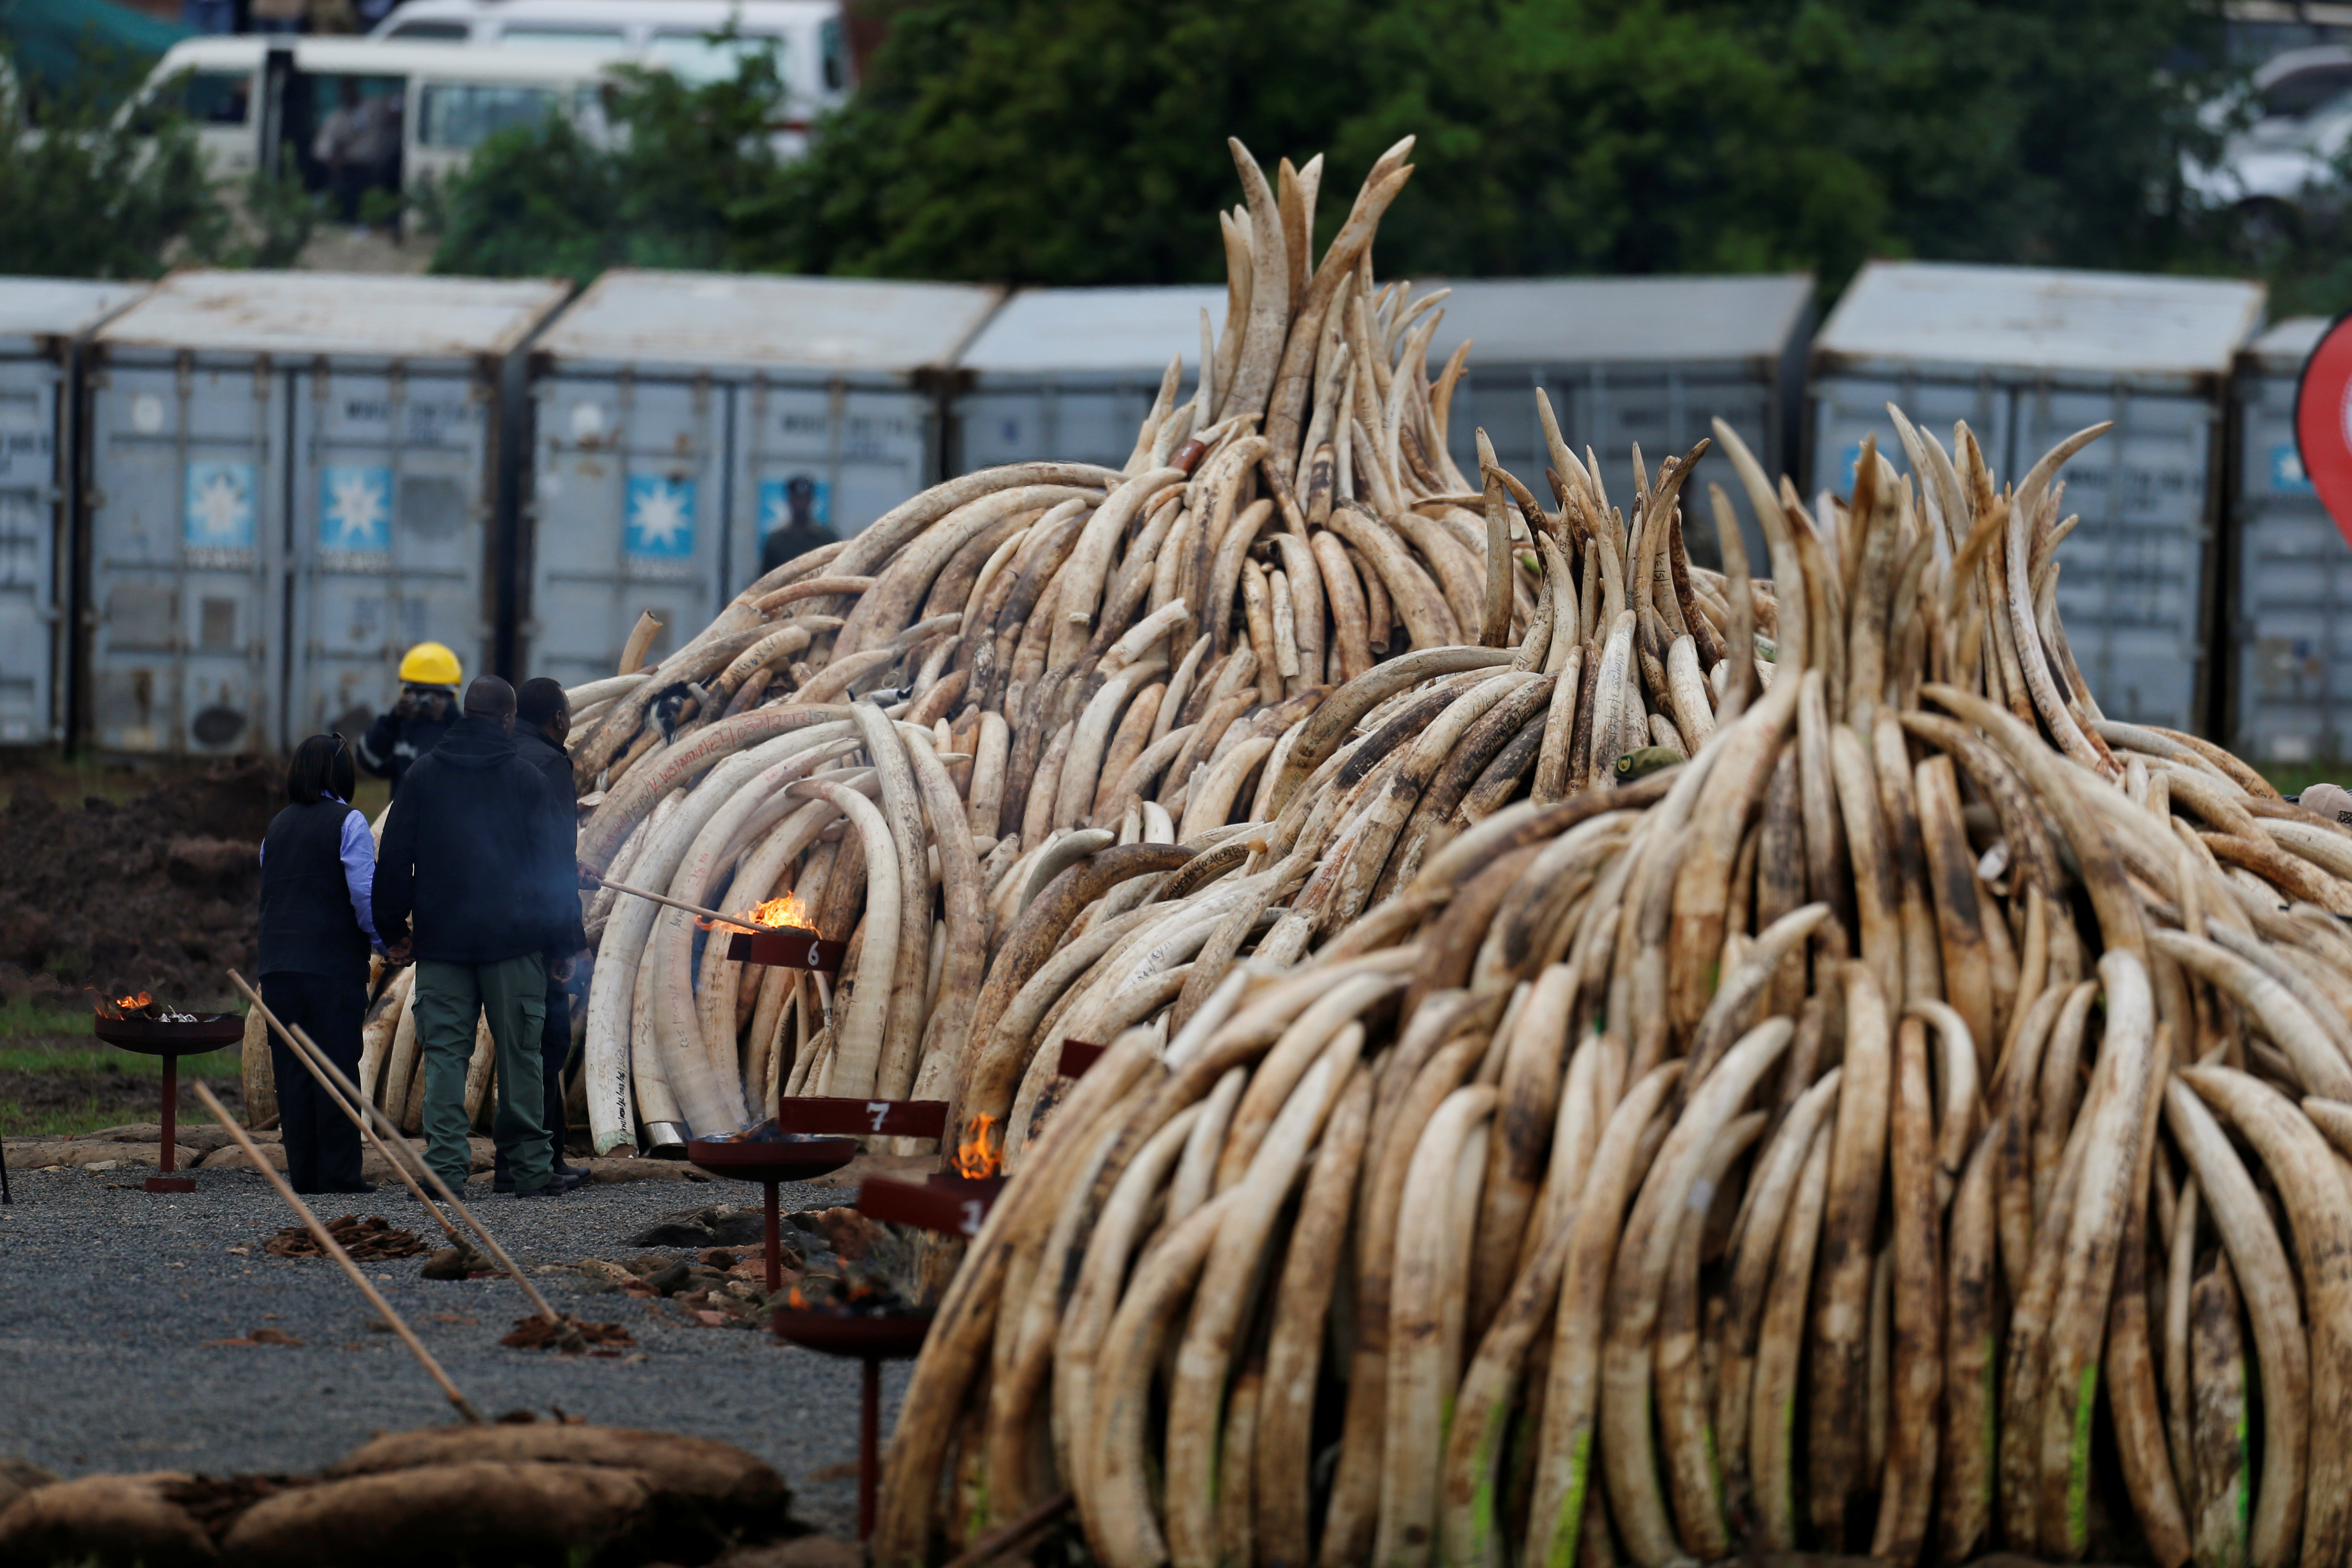 Kenya's President Uhuru Kenyatta lights elephant tusks, part of an estimated 105 tonnes of confiscated ivory from smugglers and poachers, on fire at Nairobi National Park near Nairobi, Kenya, April 30, 2016. REUTERS/Thomas Mukoya - RTX2C8K6